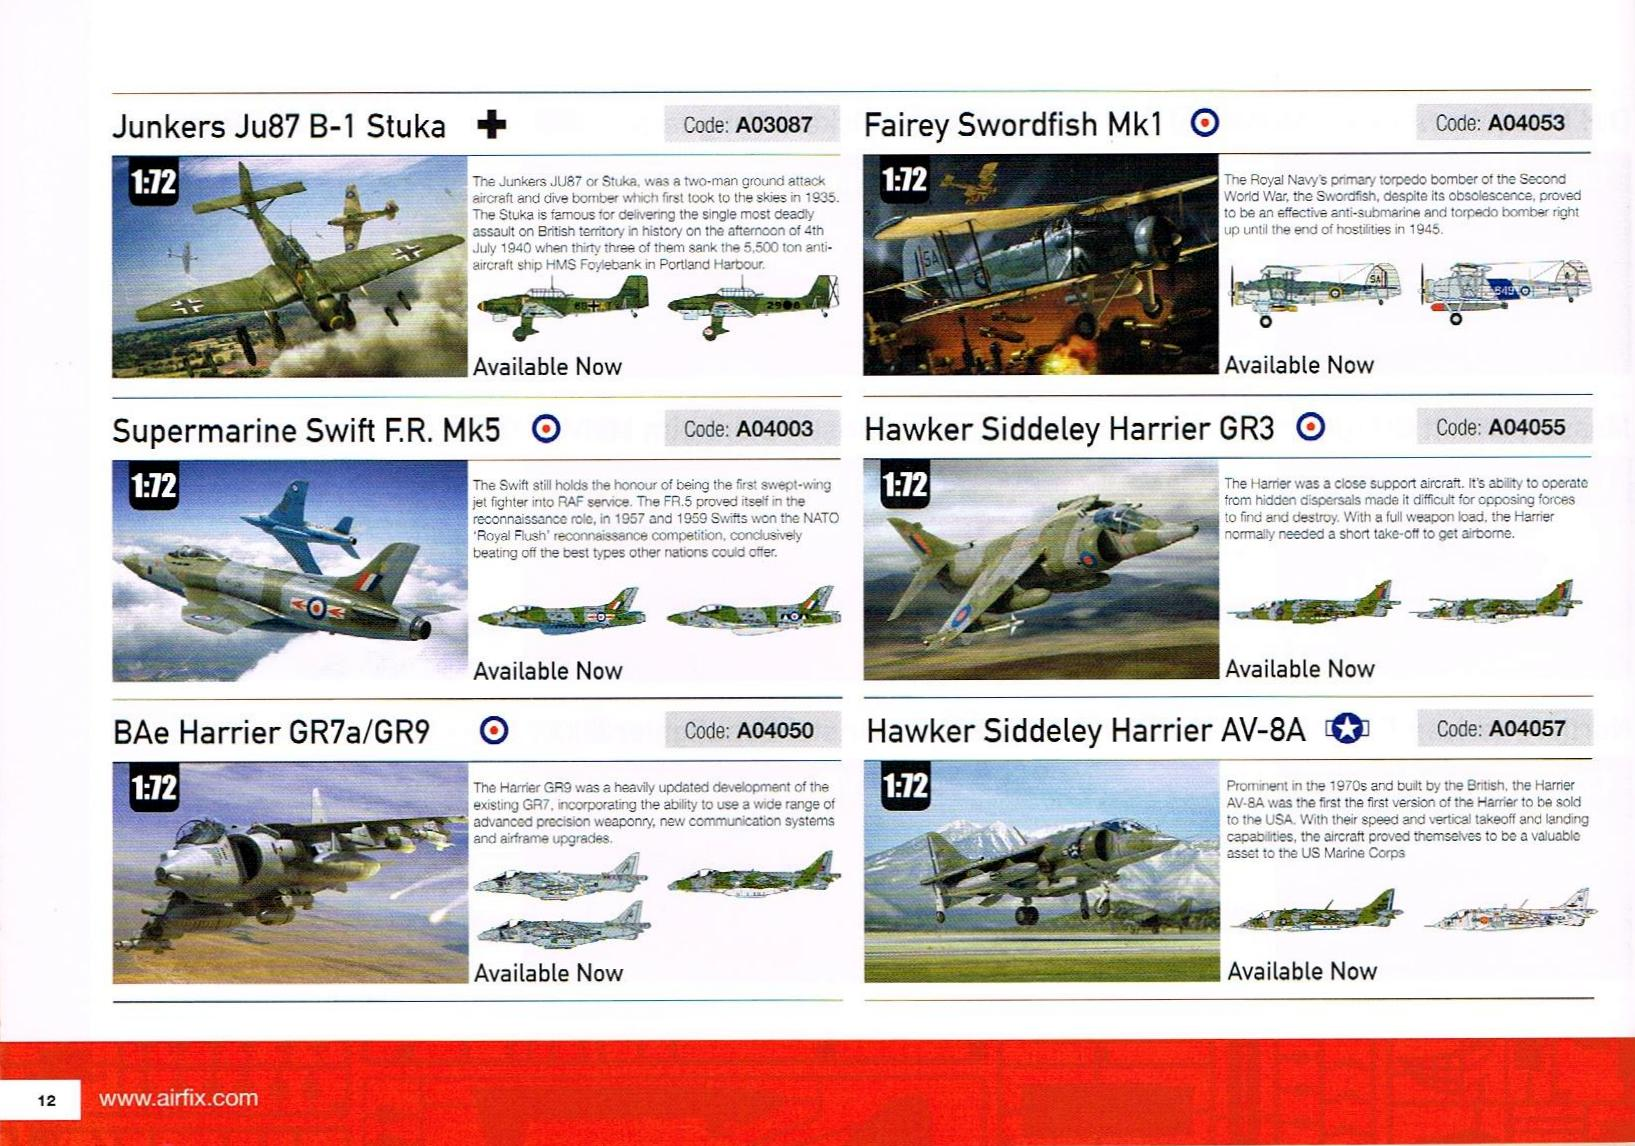 Airfix Catalogue 2015 Pdf